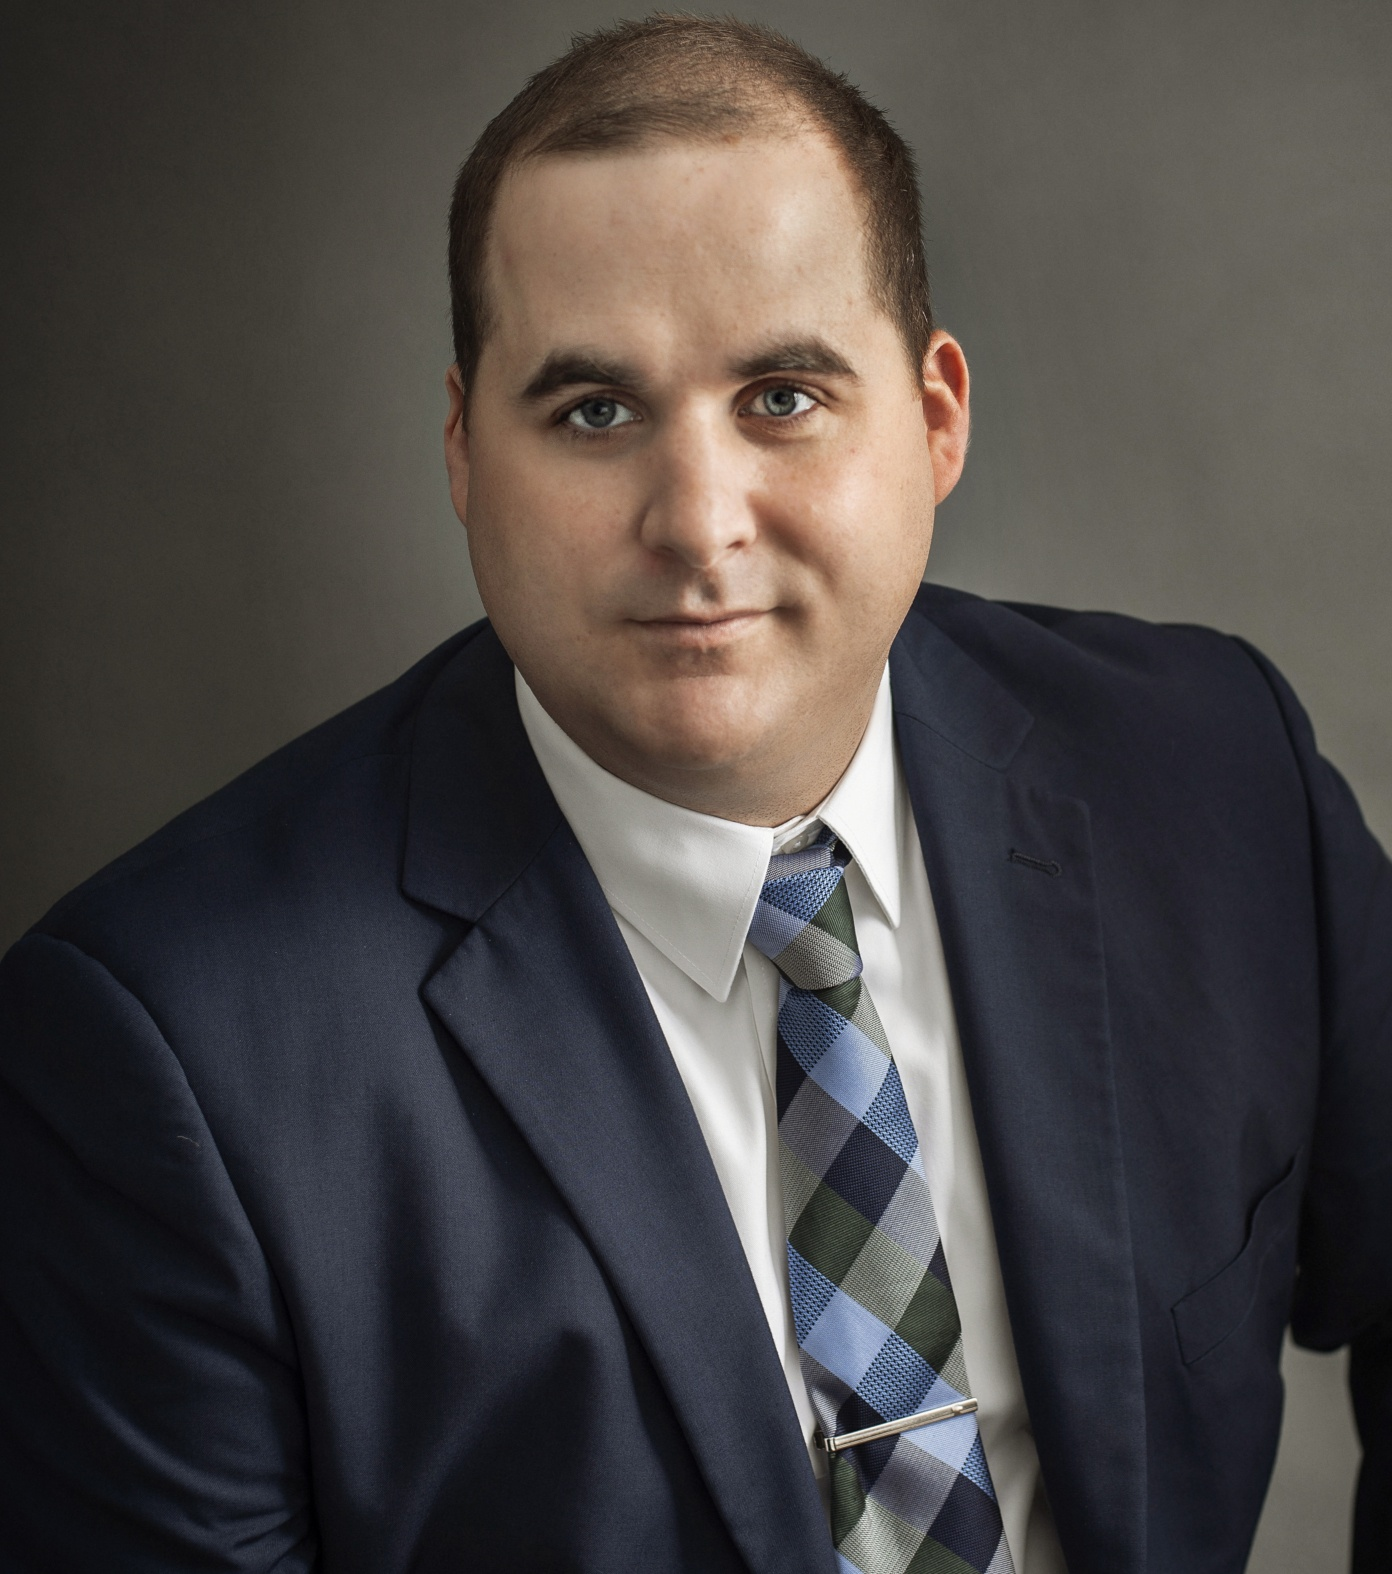 Headshot of Gregory D. Sobol, Esp. He is wearing a navy suit and blue & green square patterned tie over a white button-up shirt. He has a light, amiable expression.